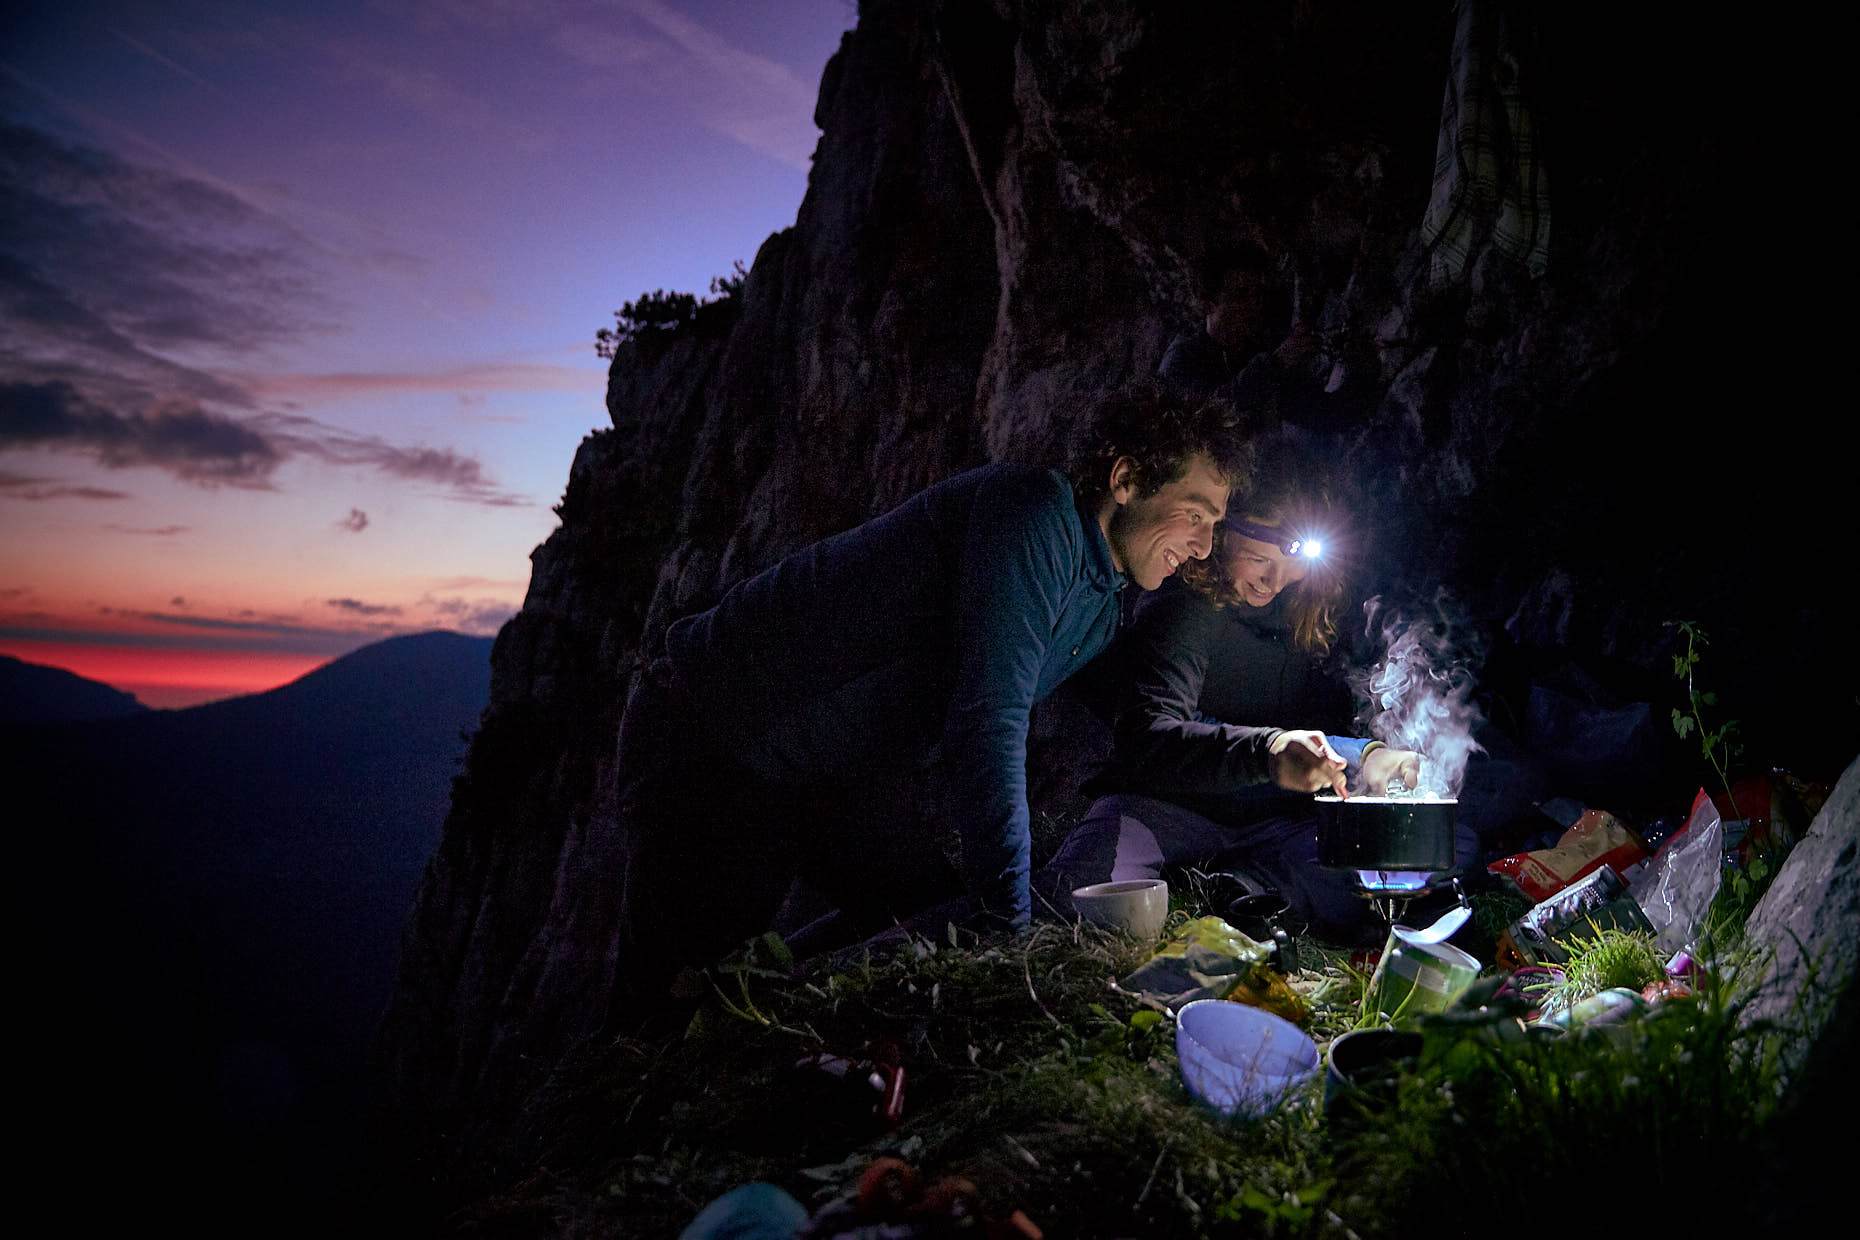 Bivouac | Stefan Kuerzi Adventure Photography